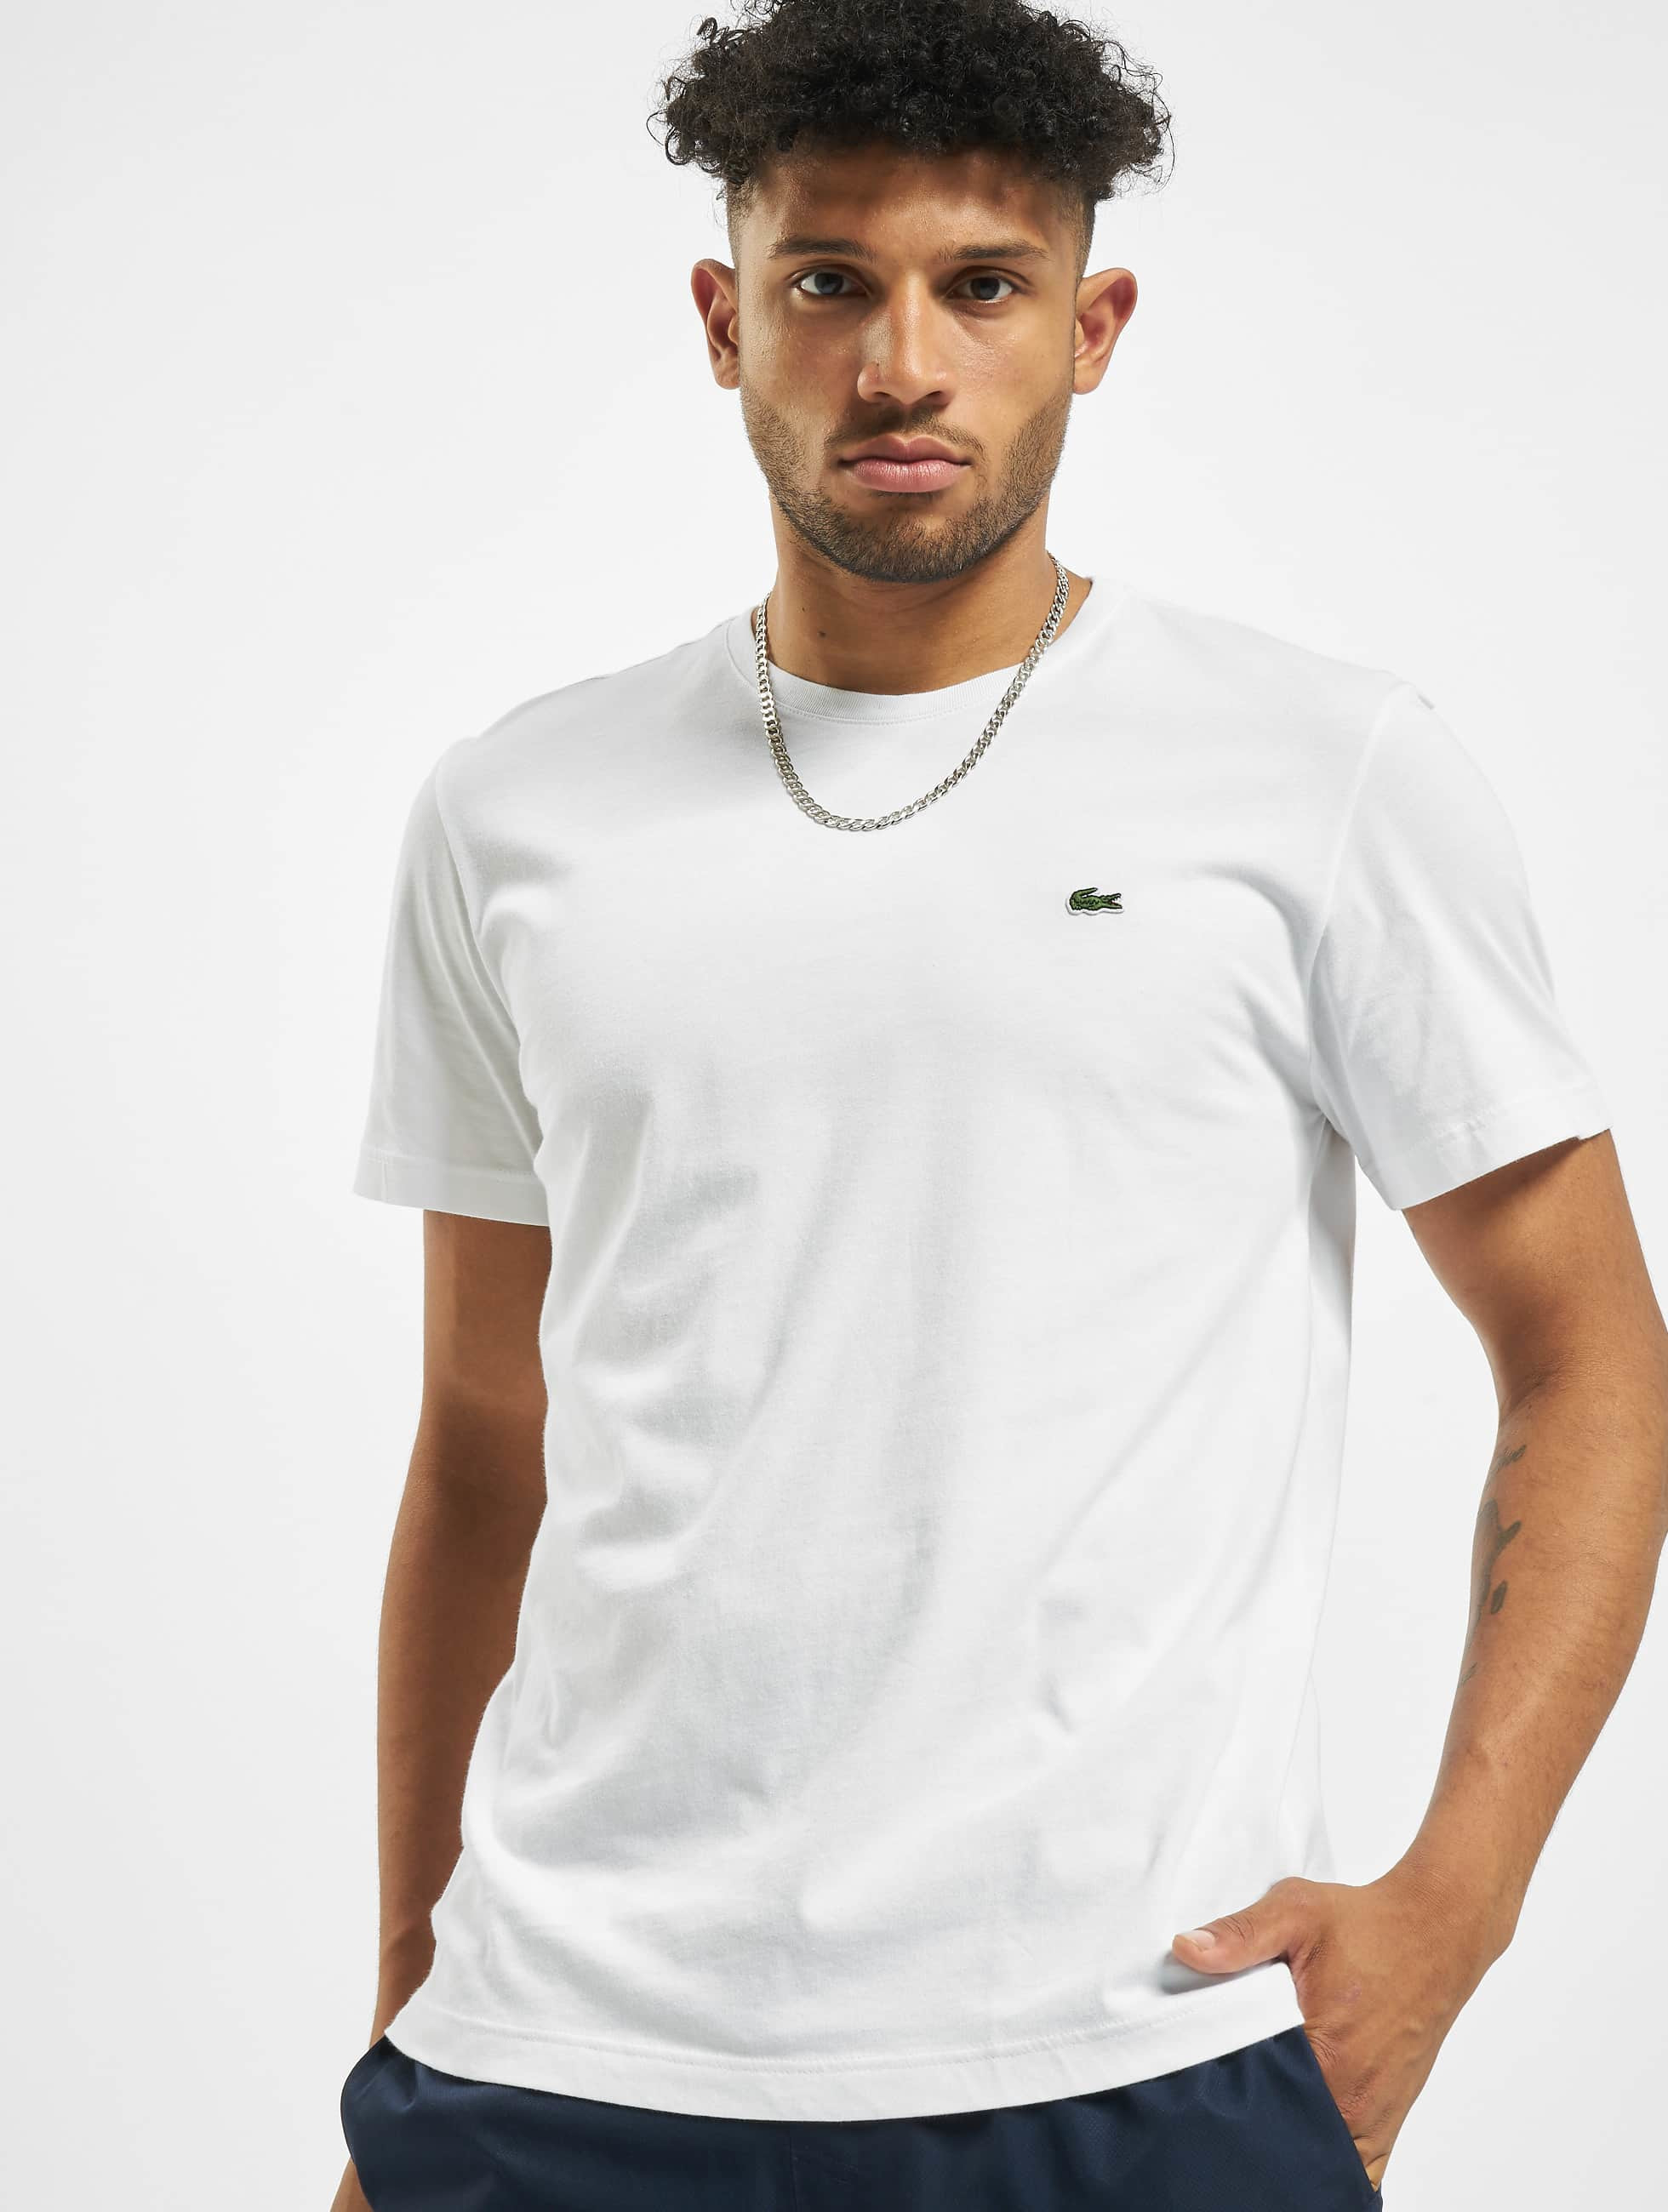 lacoste basic blanc homme t shirt lacoste acheter pas cher haut 133012. Black Bedroom Furniture Sets. Home Design Ideas